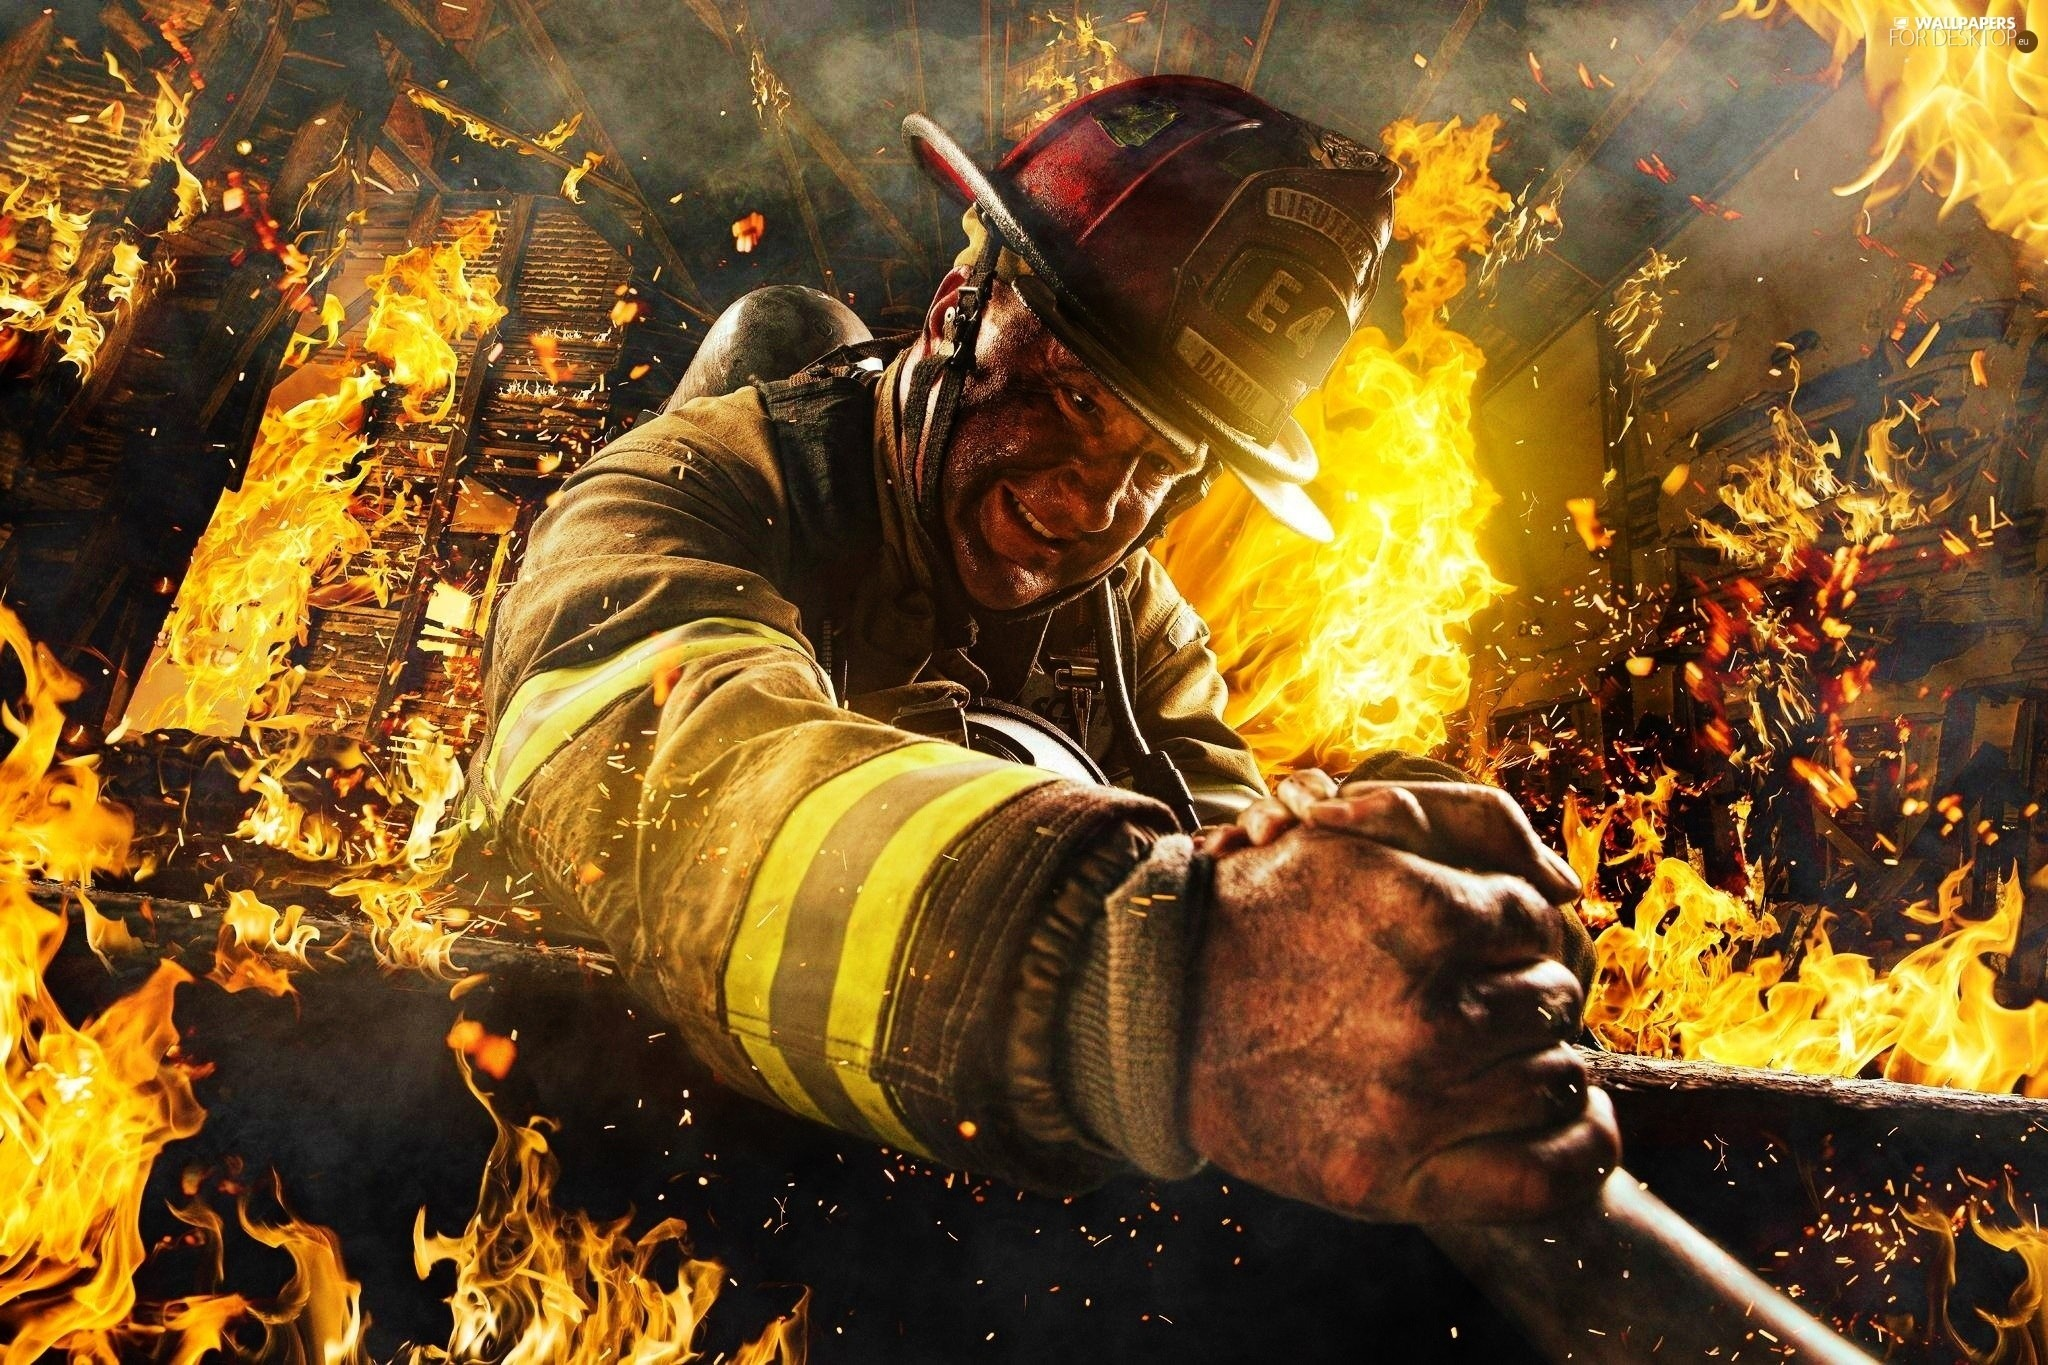 Firefighter Backgrounds 55+ pictures